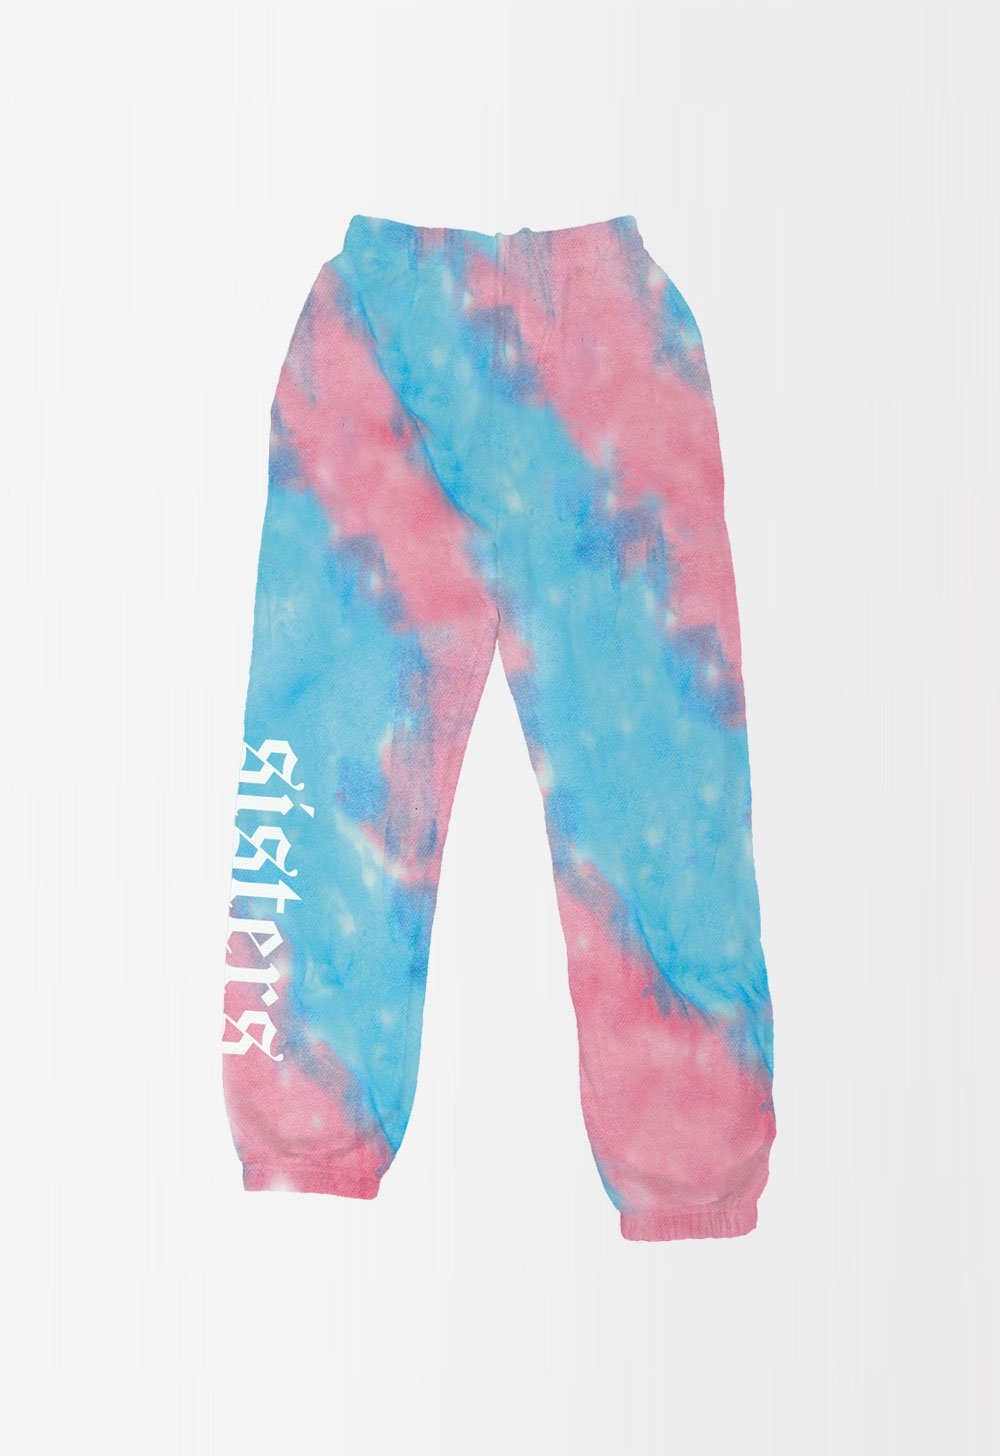 COTTON CANDY SWEATPANTS (PREORDER)